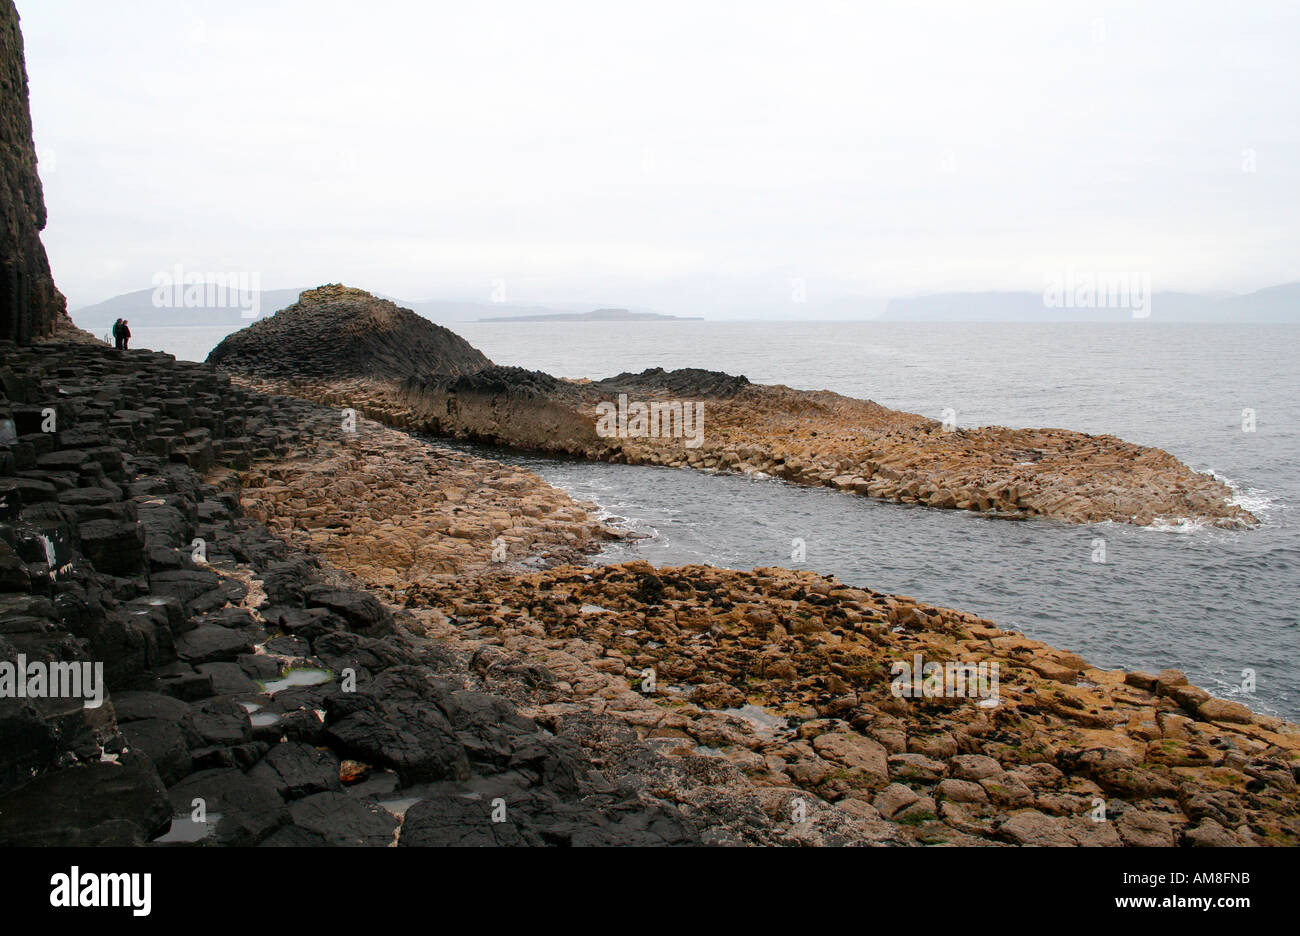 Rock formations, Fingal's Cave, Staffa, Treshnish Isles near Mull, West Coast of Scotland UK - Stock Image